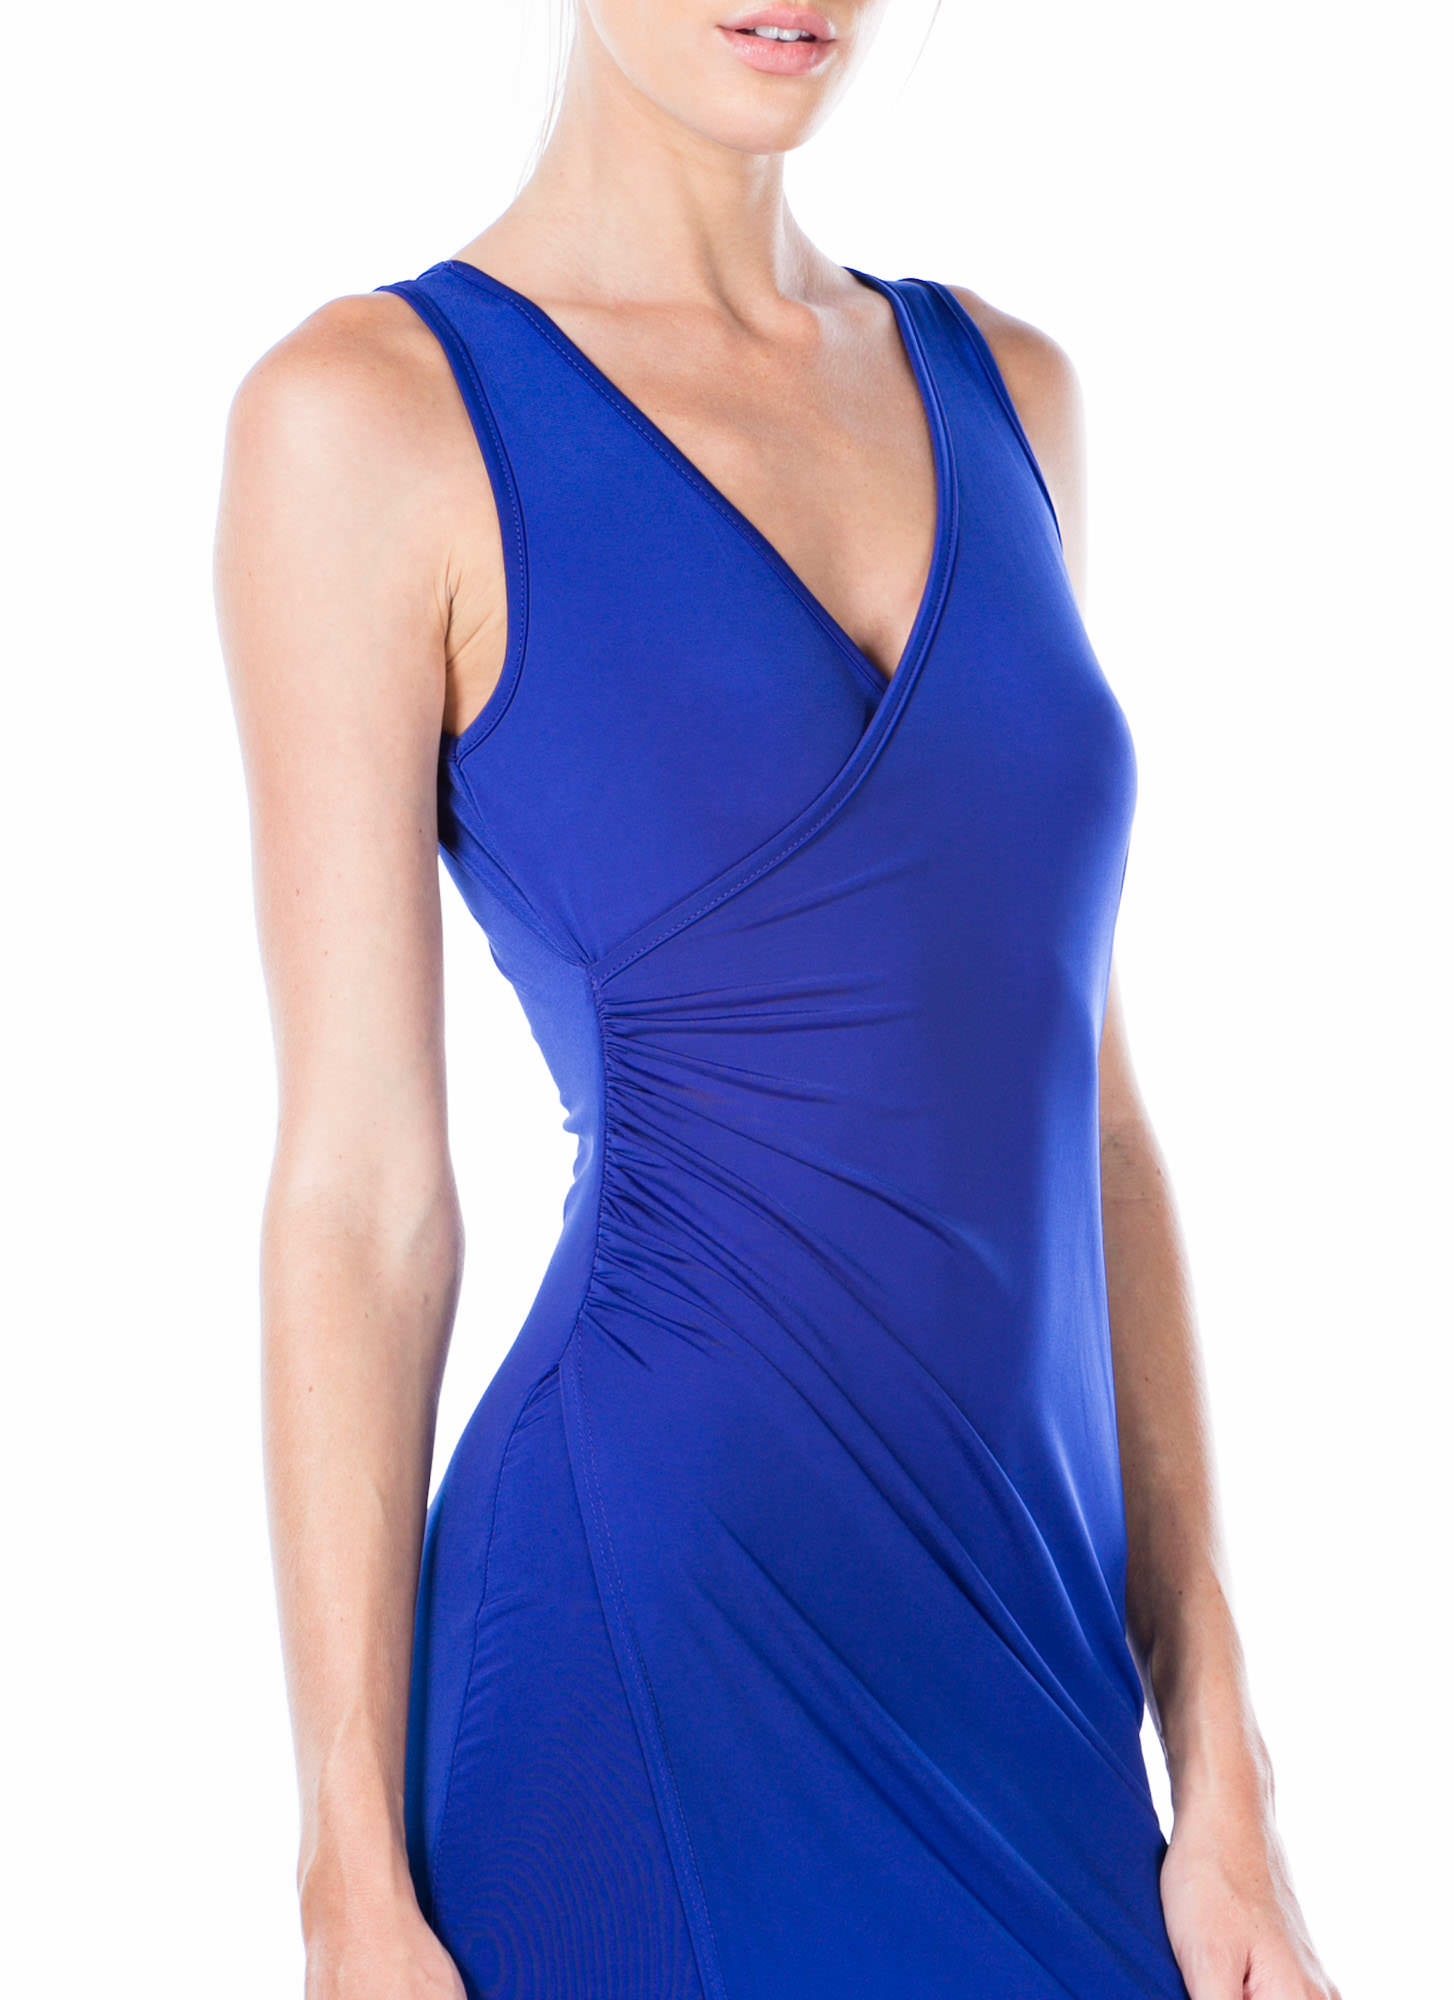 Overlapping Ruched Bodycon Dress RYLBLUE